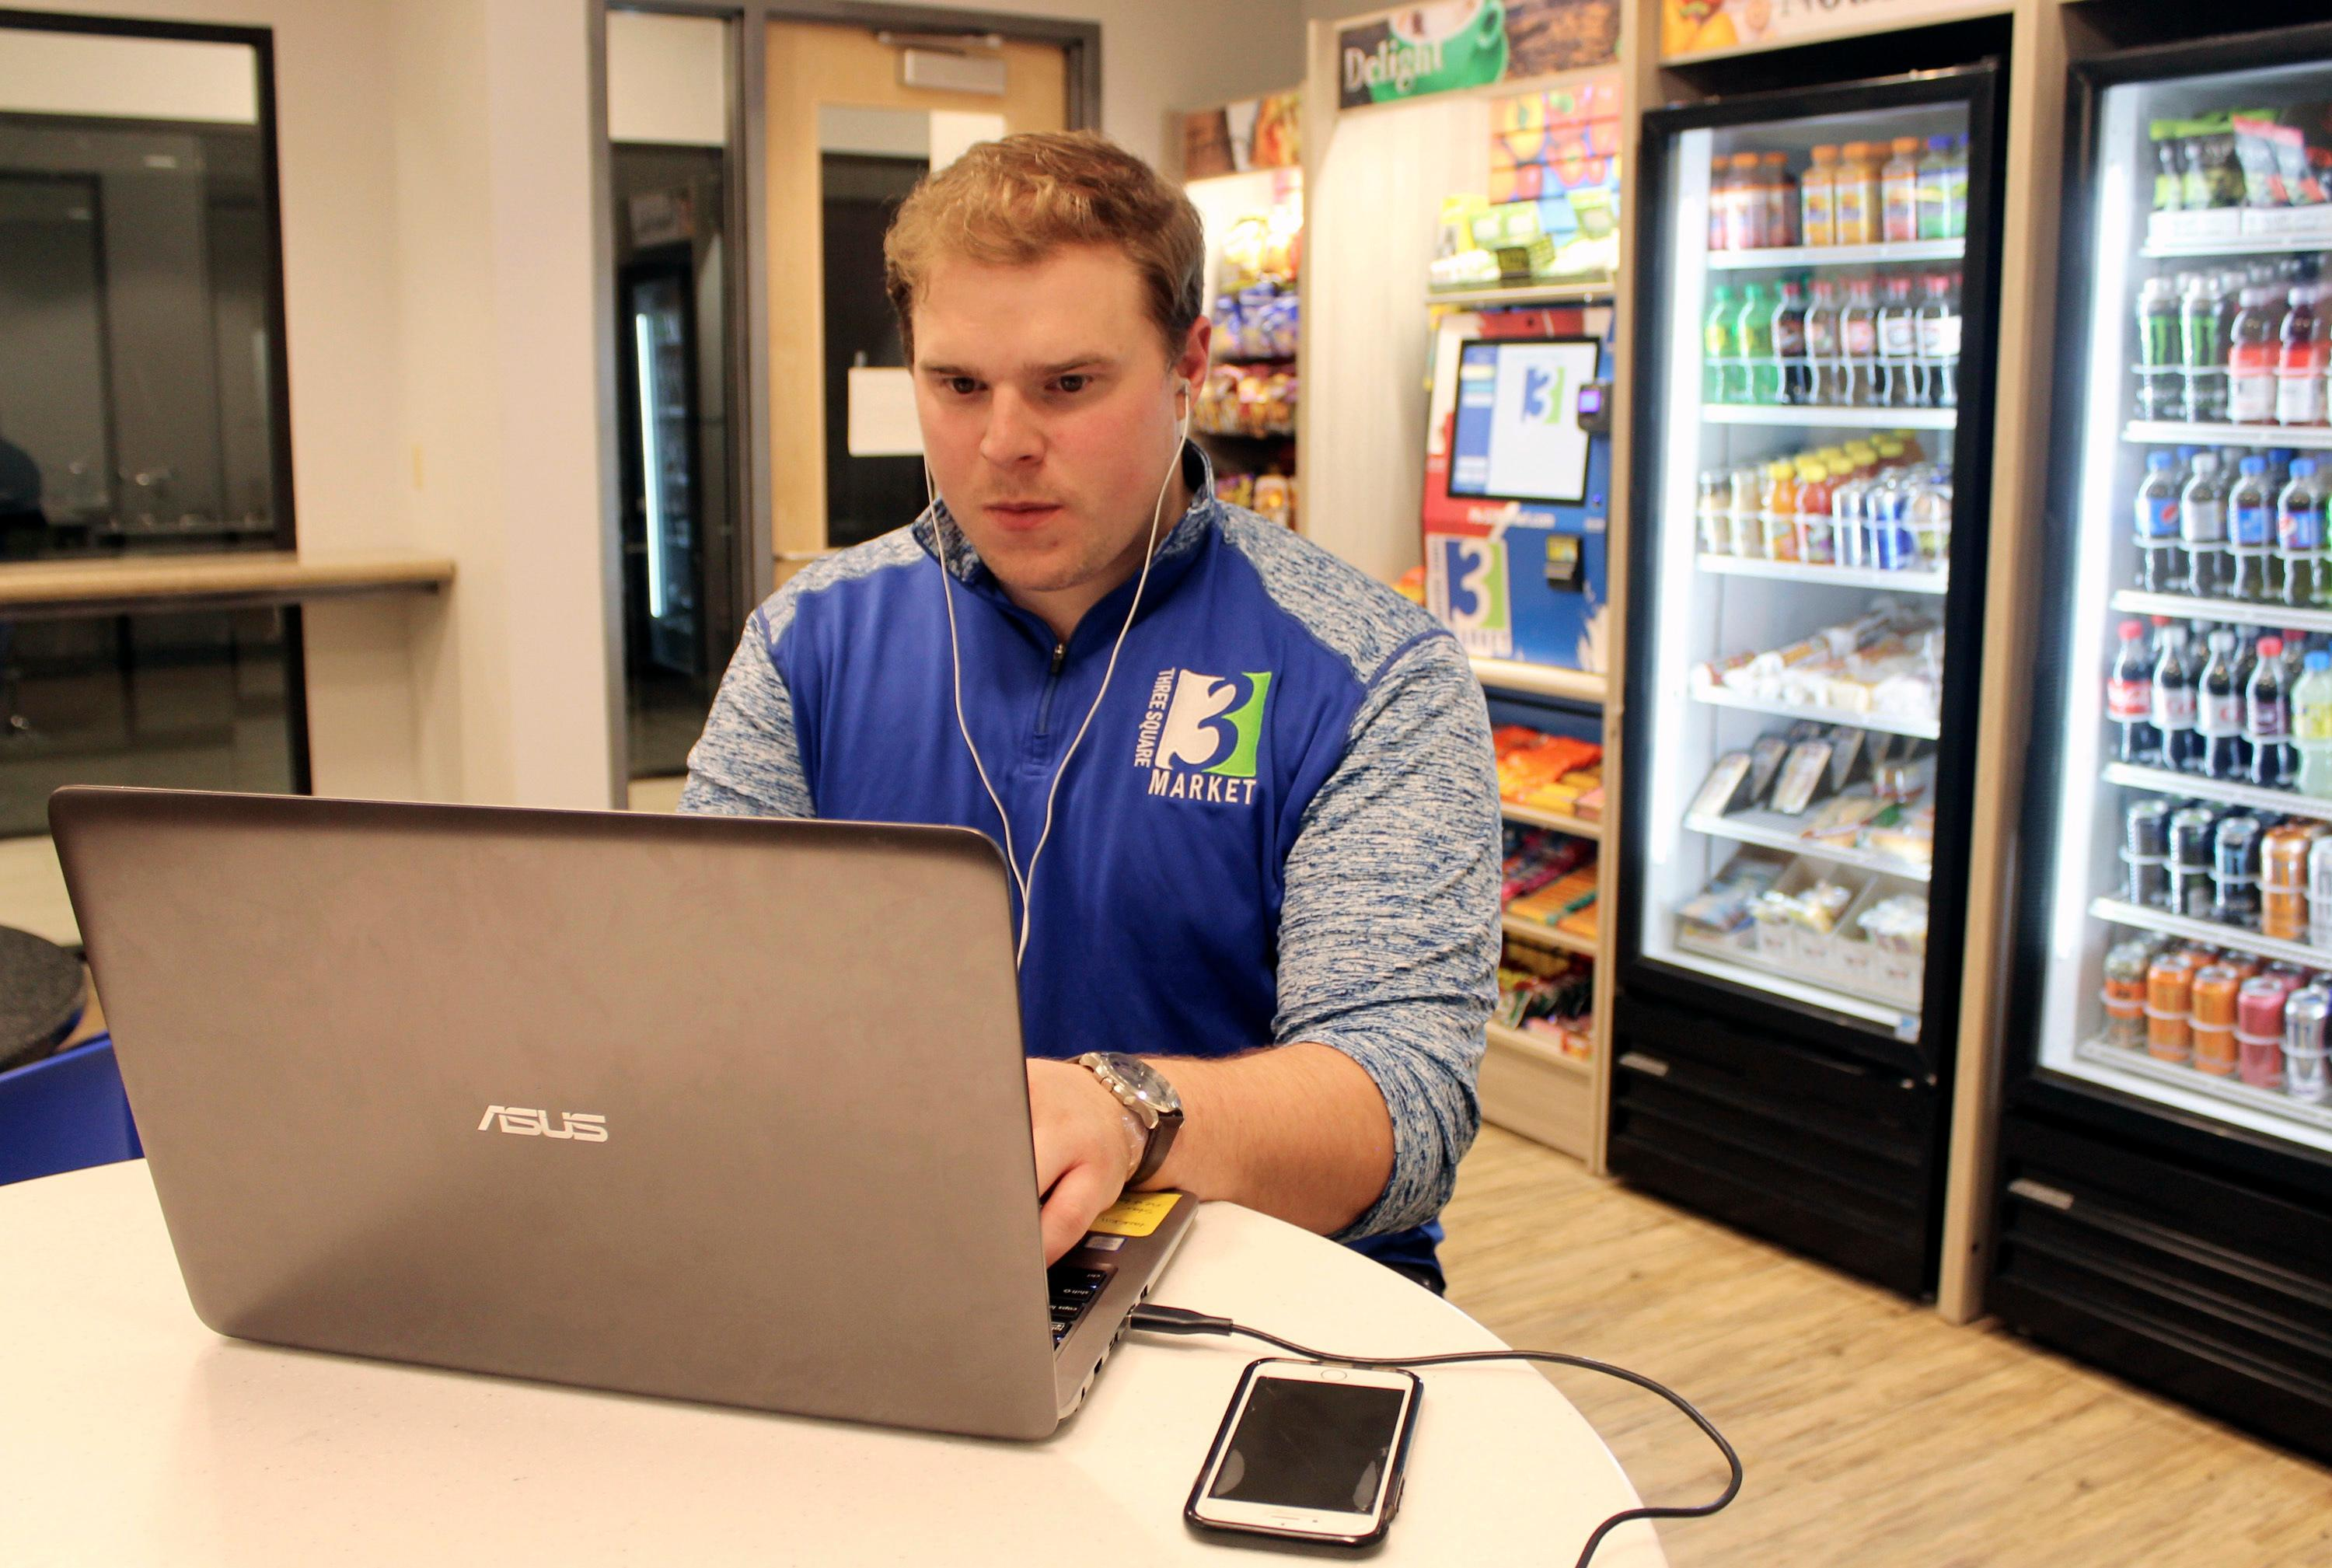 Tony Danna, vice president of international development at Three Square Market, works on his laptop in a company break room at its headquarters, Tuesday, July 25, 2017 in River Falls, Wis. The software company is offering to microchip its employees, enabling them to open doors, log onto their computers and purchase break room snacks with a simple wave of the hand. (AP Photo/Jeff Baenen)